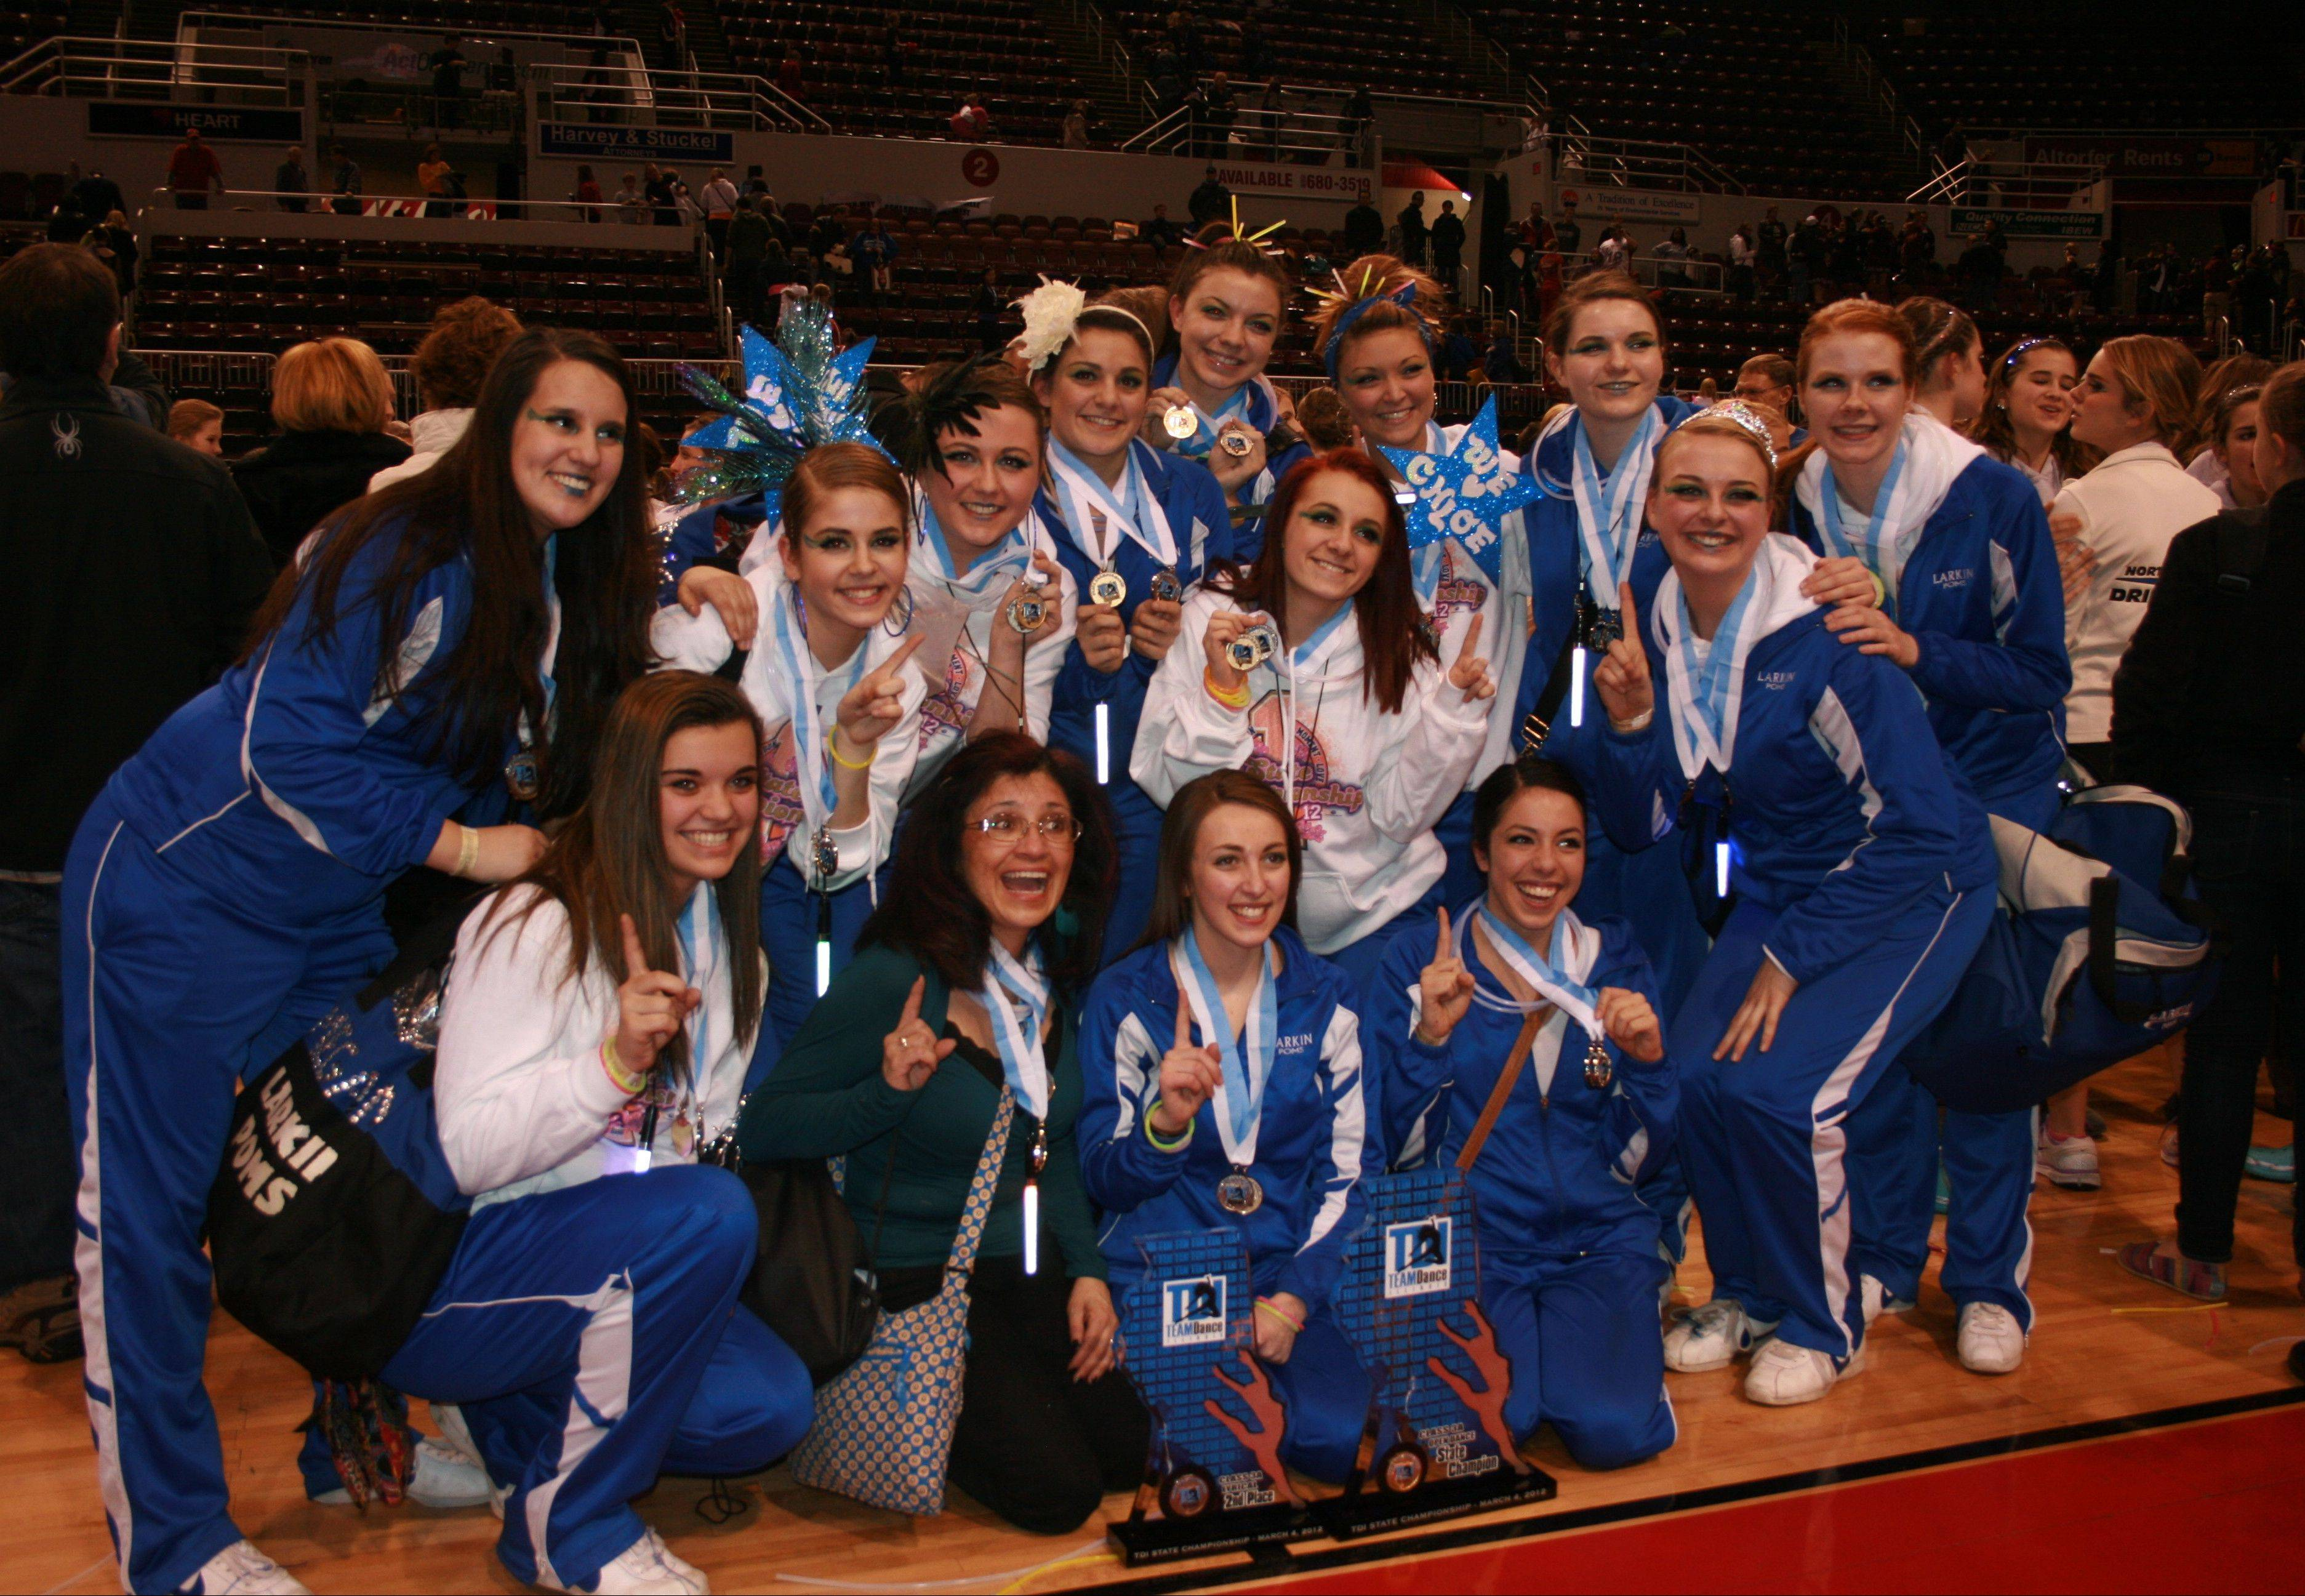 The 2011-2012 Larkin High School Poms won first place in the 3A open dance category at the state finals last March. Bottom row, from left: Student manager Megan Malone; coach Laura Newmeyer; former captain Briana Ripoli; former captain Jordan Maijala. Middle row, from left: Chloe Hamilton; Brenna Fulin; Aine Naughton; Madison Cherry; Julia Burch. Top, from left: Liz McKee; Micaela Bender; Chloe Petramale; Dakota Judson and team manager Cayley Norton. Mika McCullough and Alexis Jorgensen are not pictured.